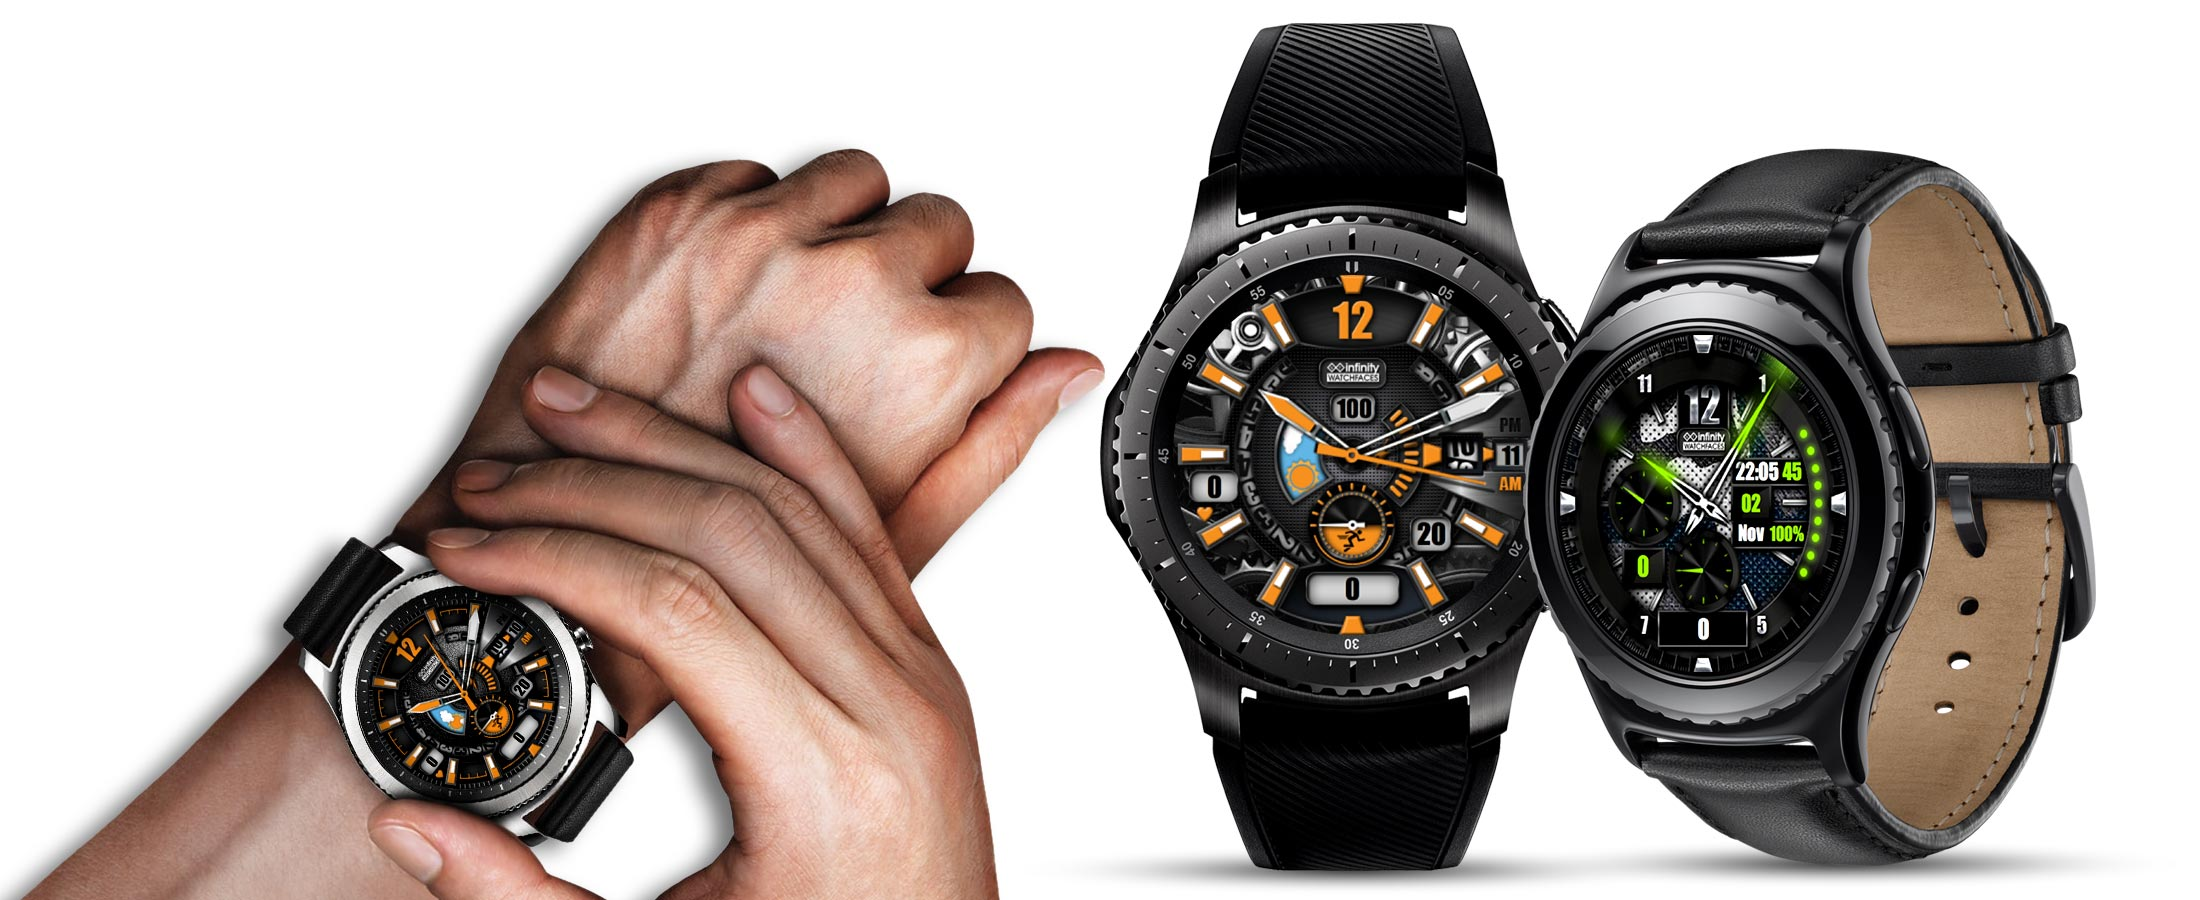 galaxy watch samsung price smart gear description in watches pakistan